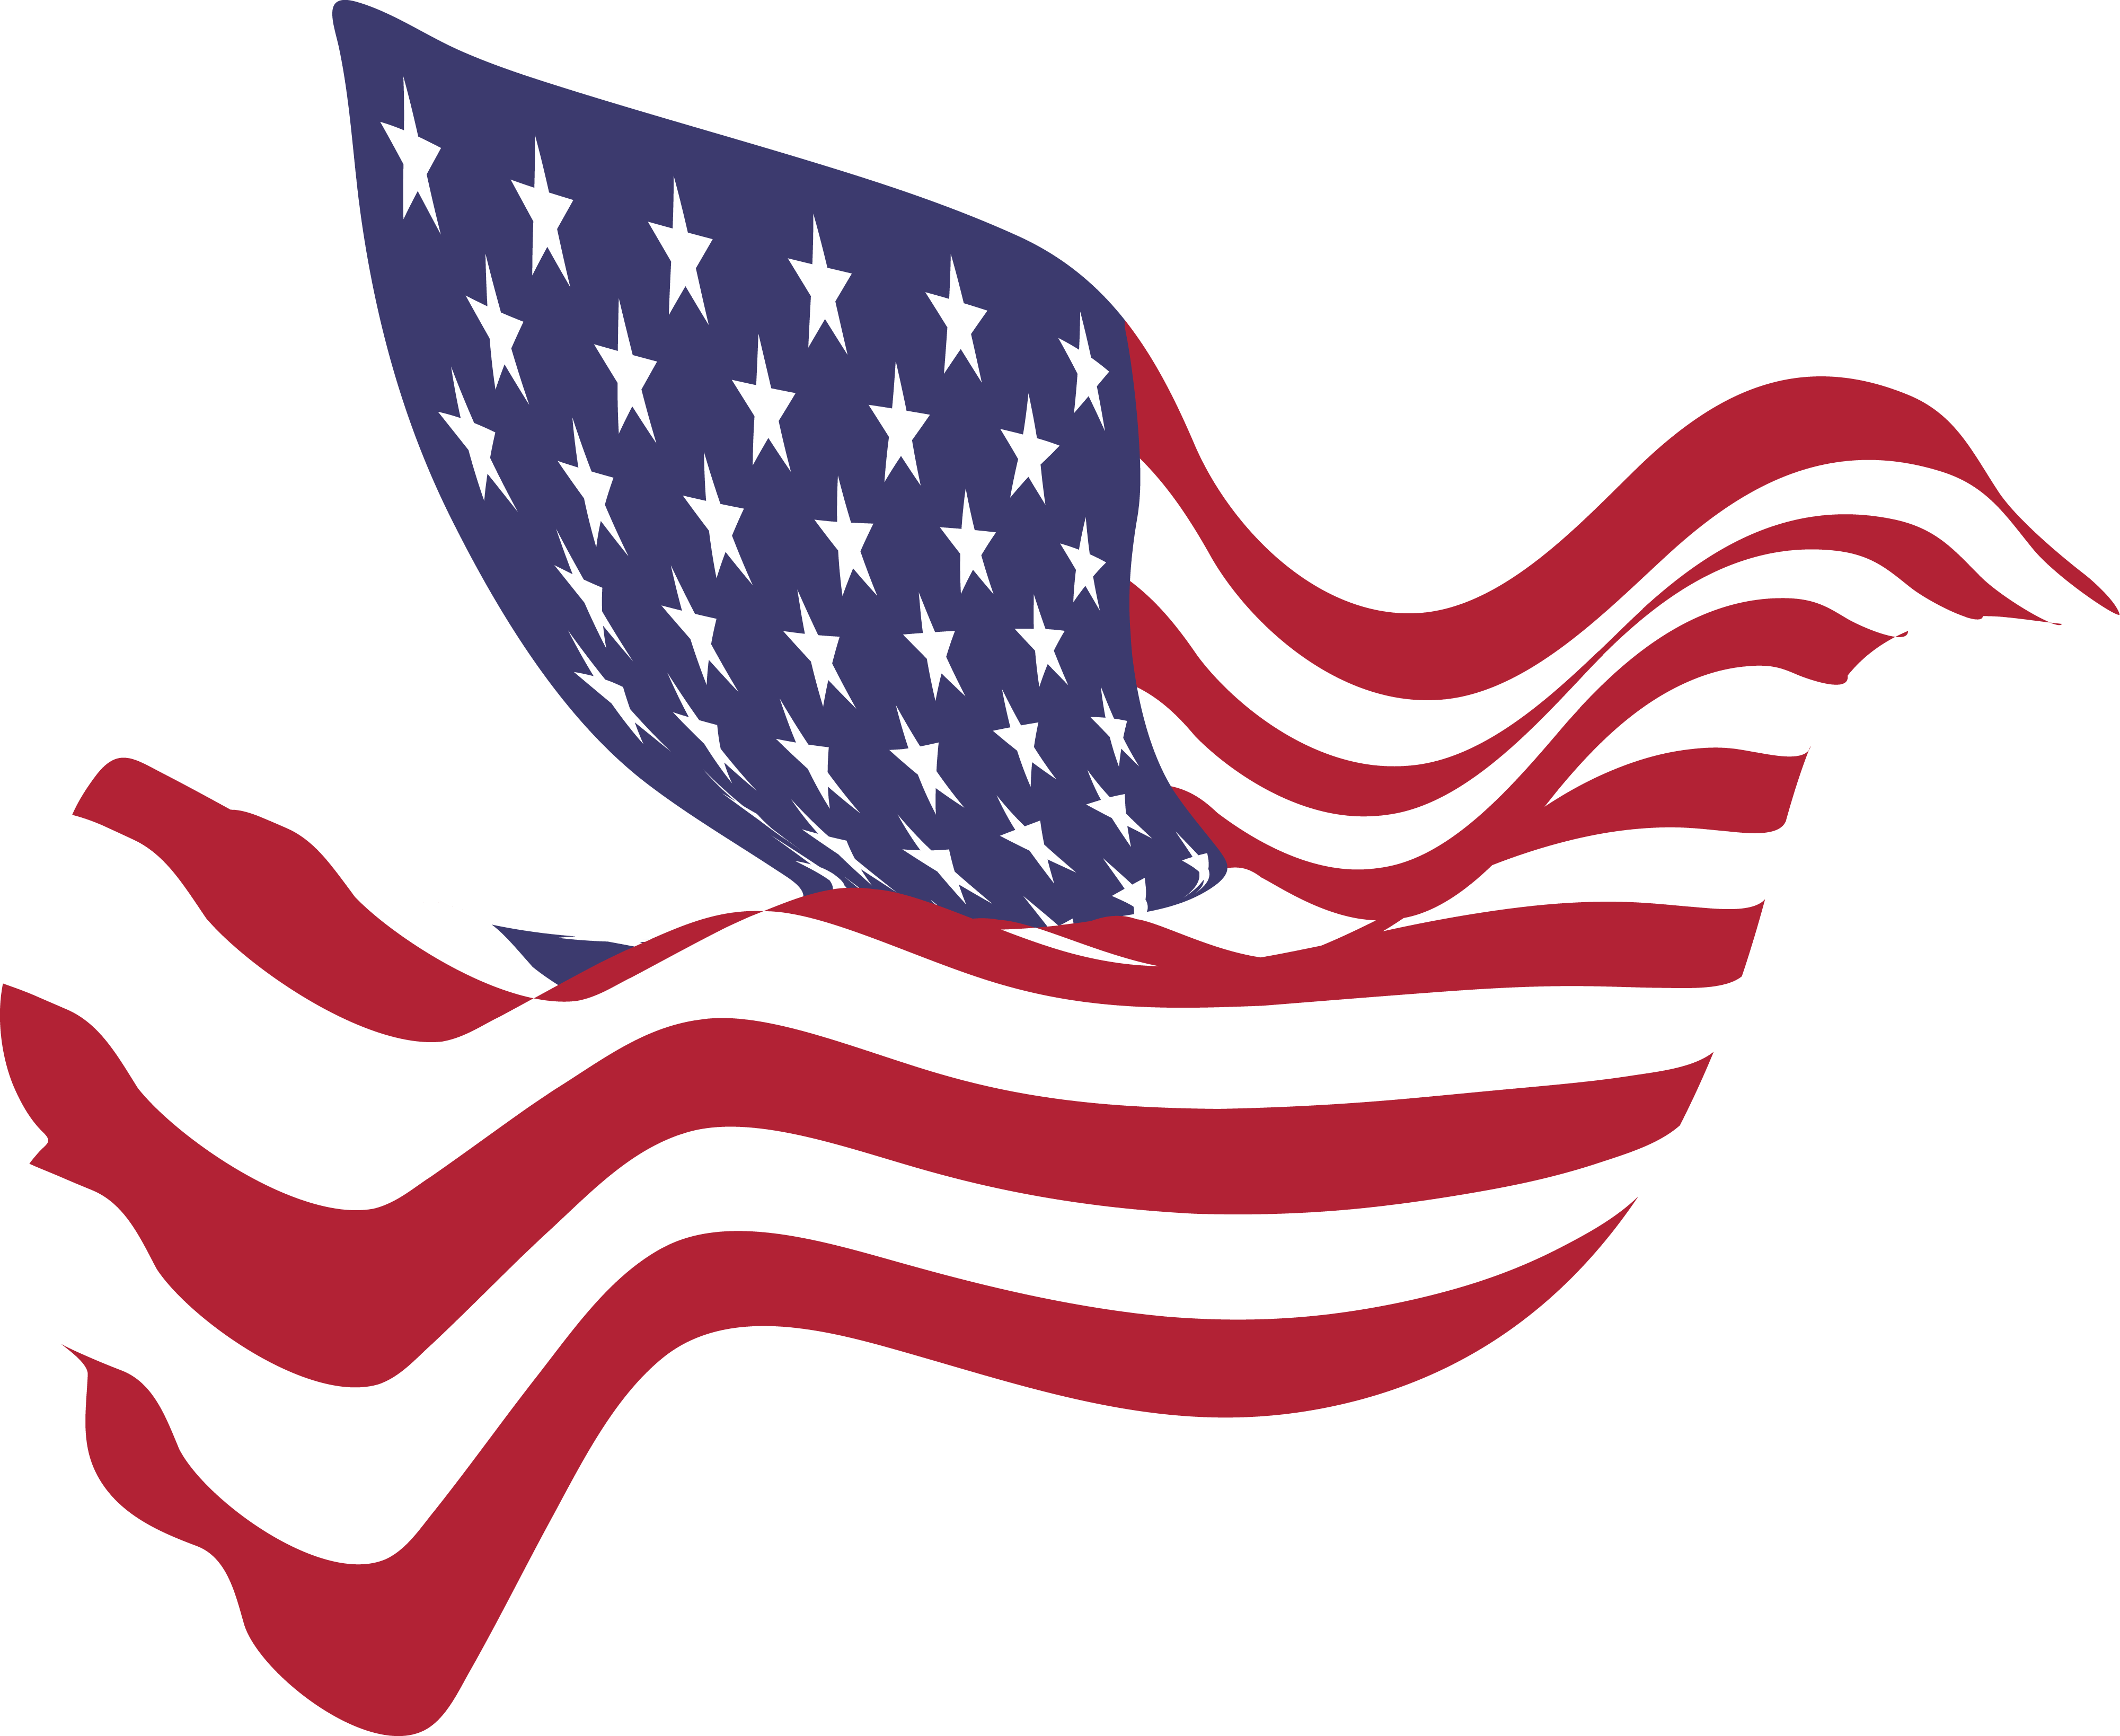 4000x3275 Free Clipart Of A Peace Dove With An American Flag Pattern